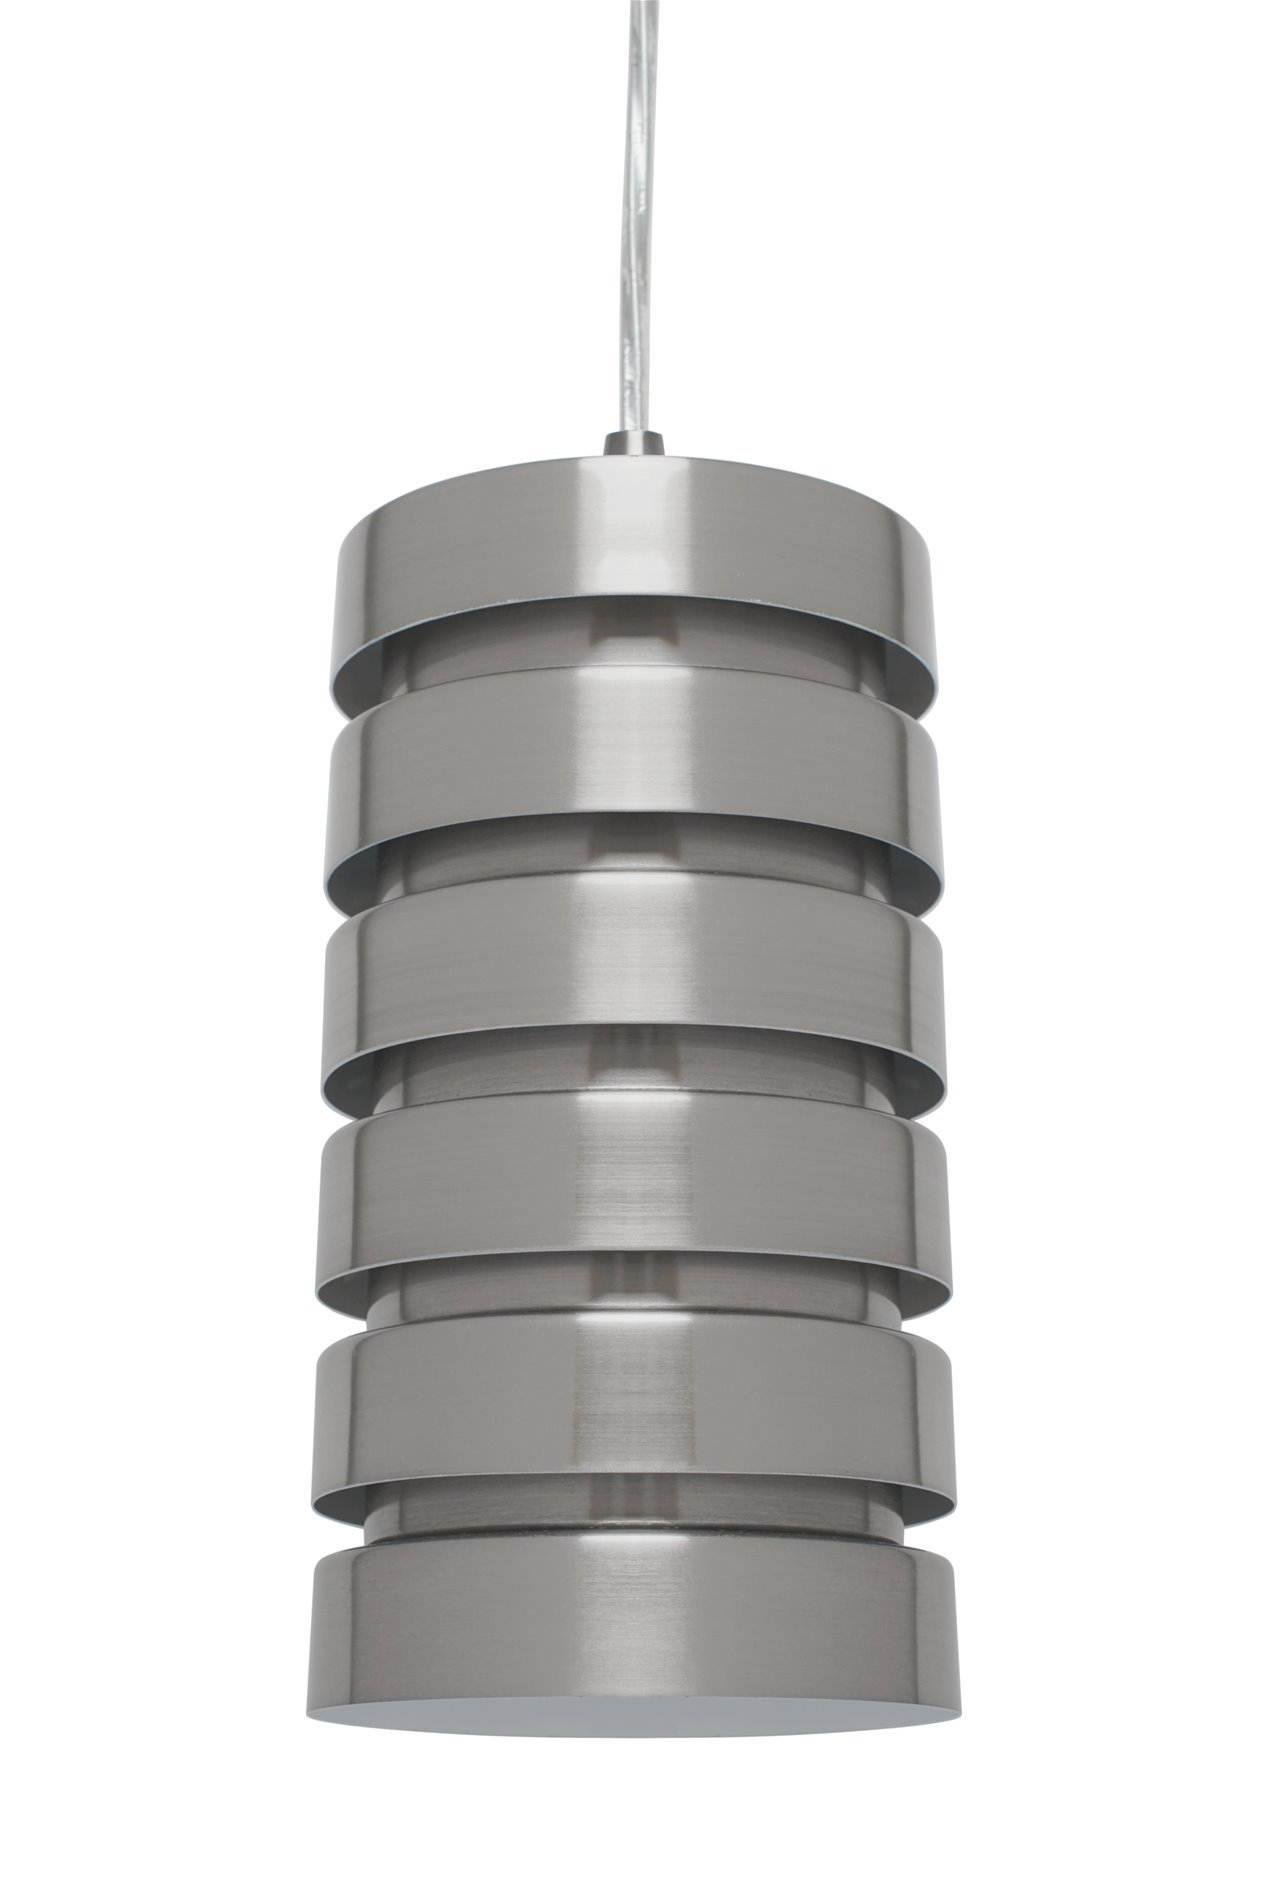 Kira Home Aura 9.5'' Modern Pendant Light + Stacked Shade, 1 Light Industrial Hanging Lamp, Adjustable Wire, Brushed Nickel Finish